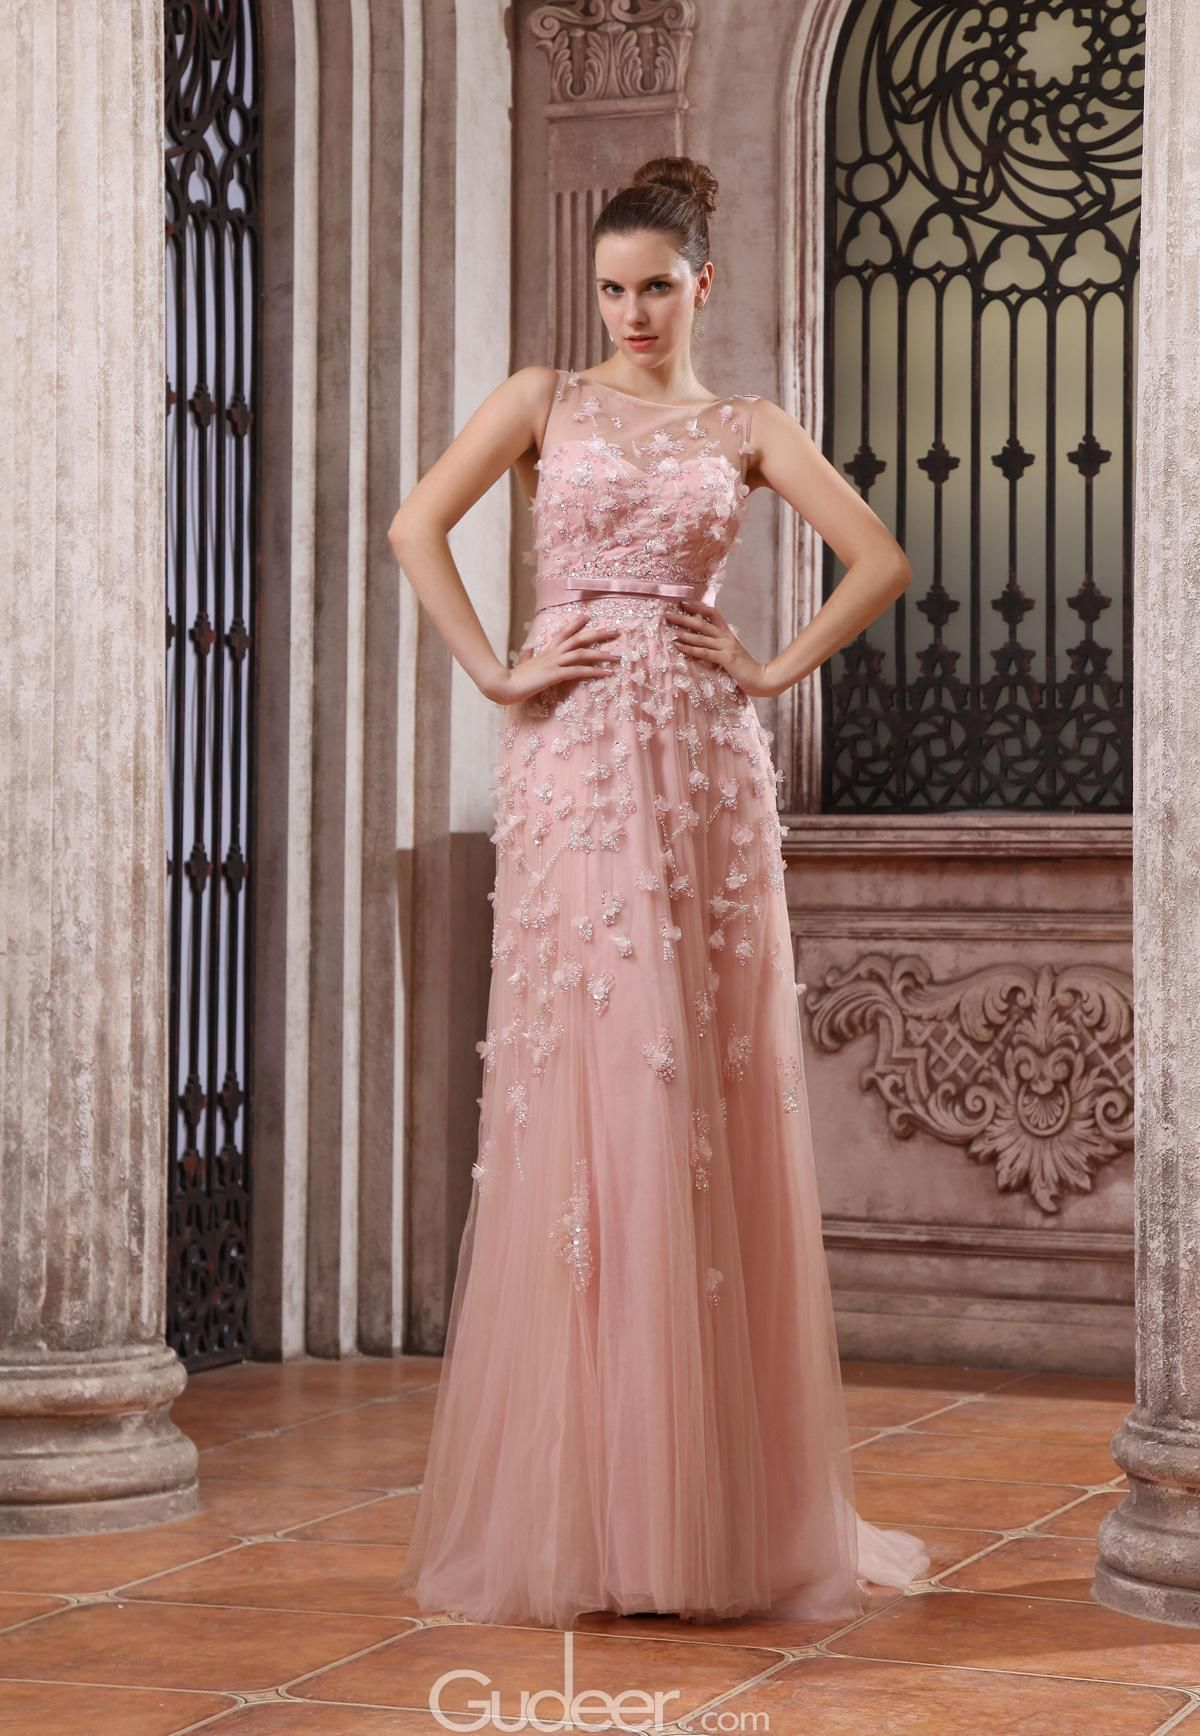 luxury peach tulle and chiffon sweetheart long evening prom dress. #weddingdresses #weddinggowns